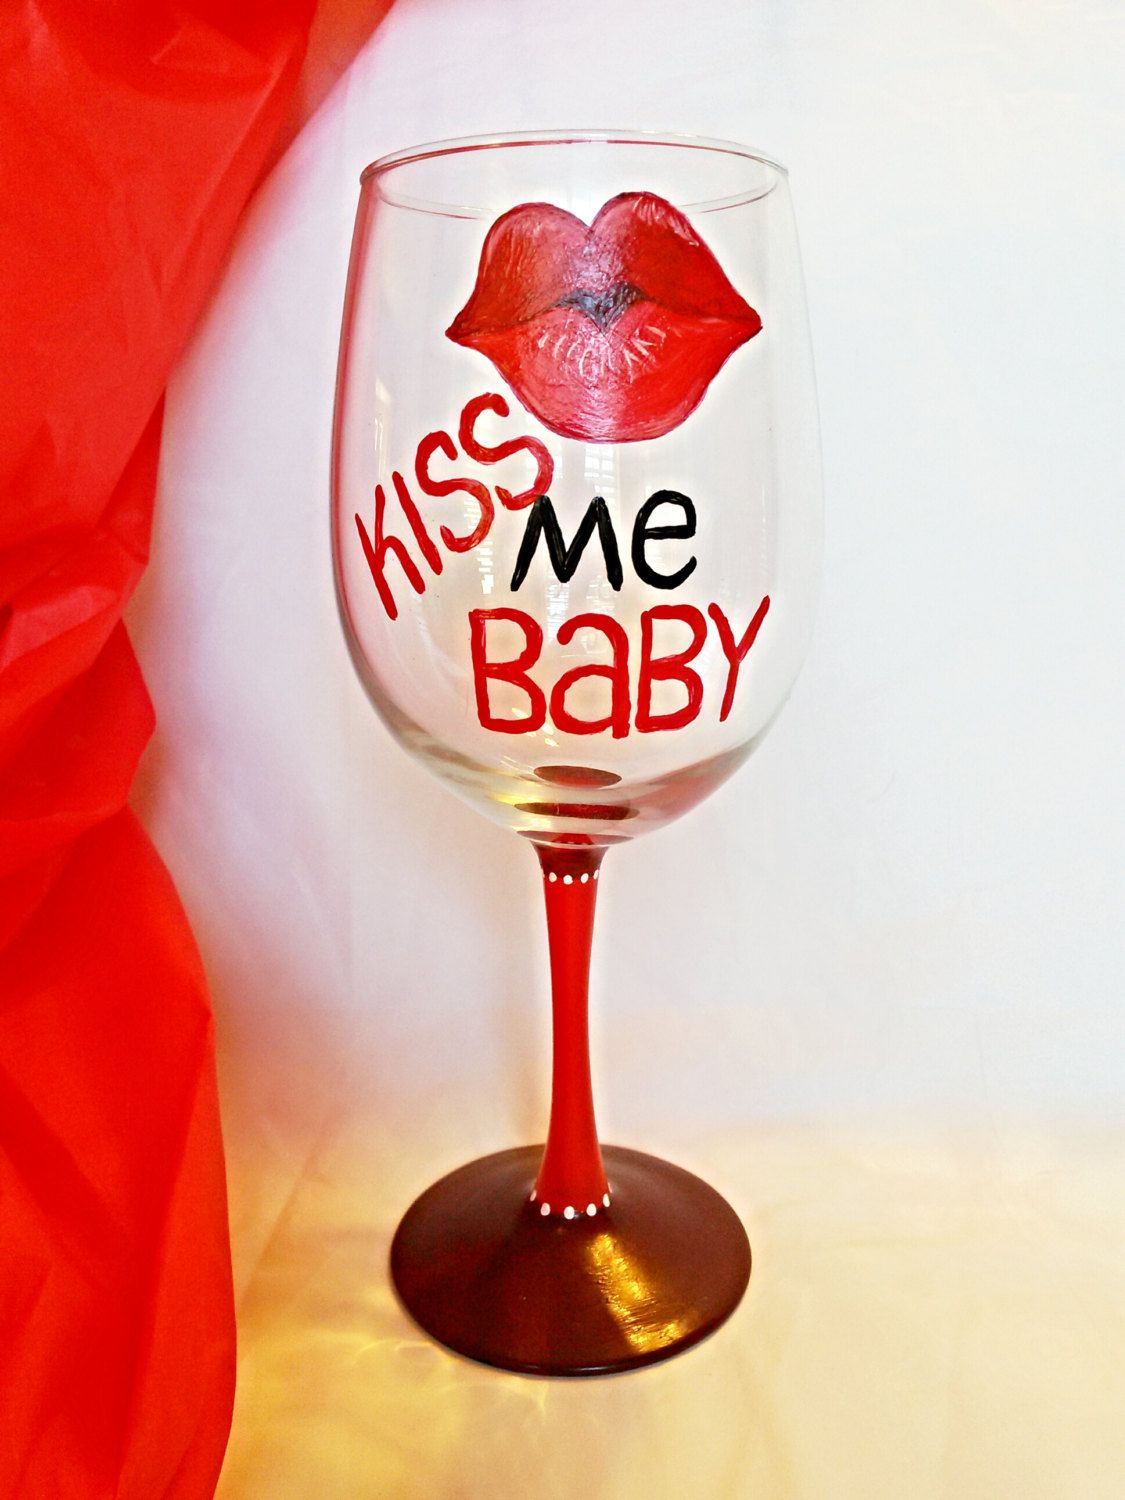 Valentines Day Gift Painted Wine Glass Decorated Wine Glass Anniversary Gift Red Kissing Gifts For Fiance Birthday Gift For Wife Anniversary Gifts For Wife